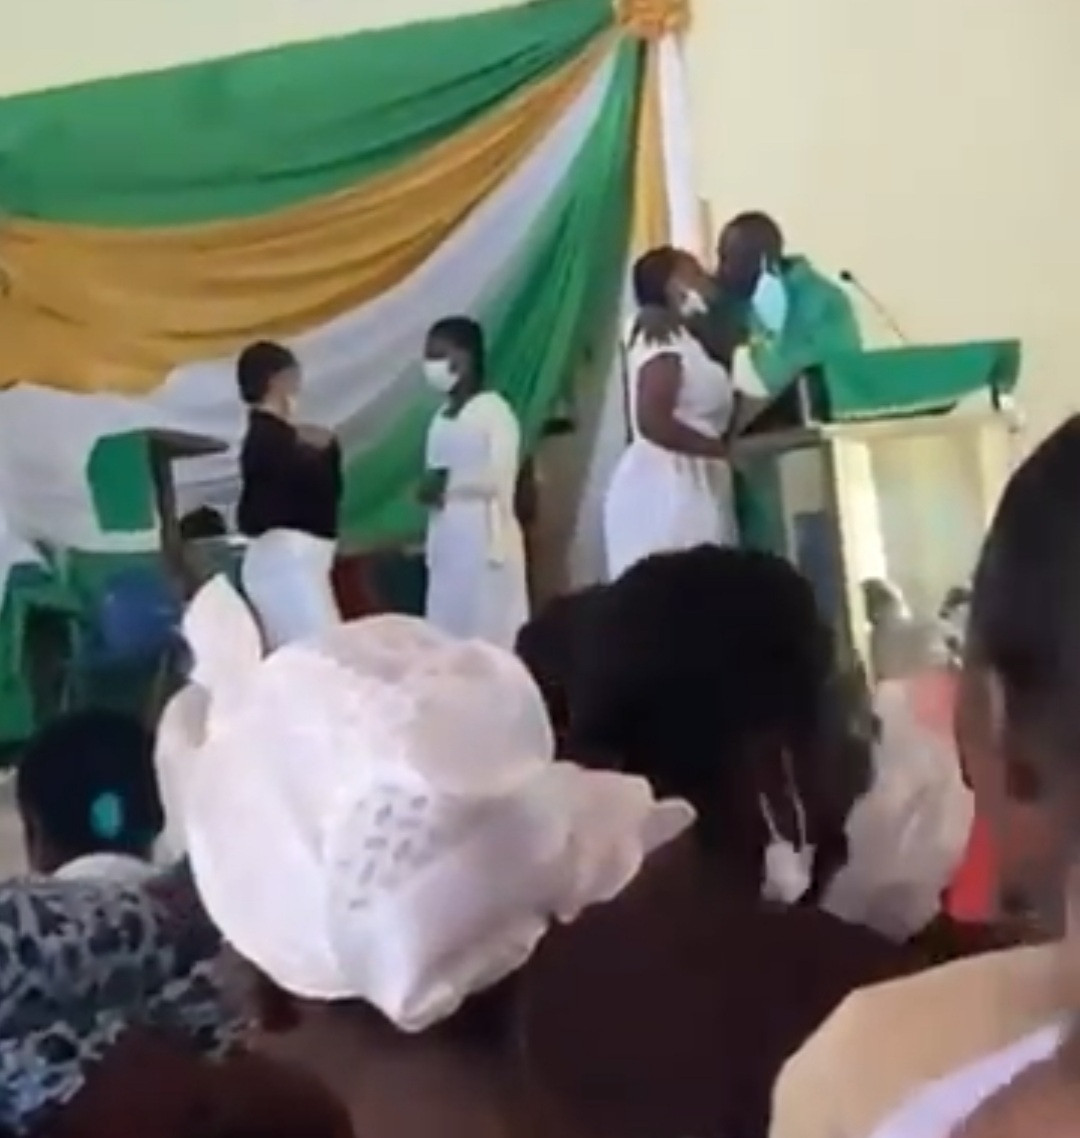 The priest kissing female students